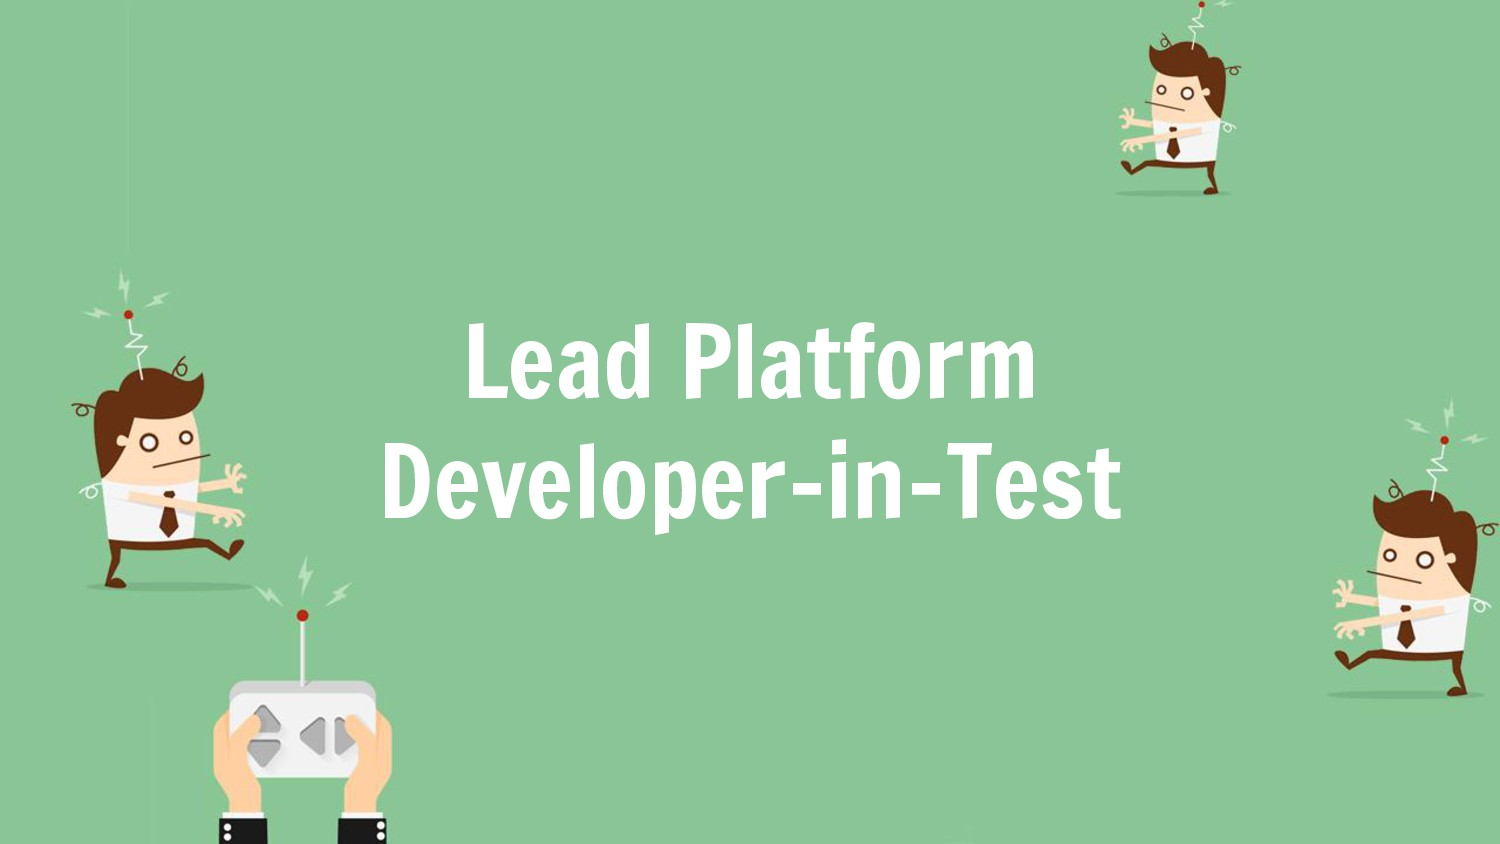 Lead Platform Developer-in-Test